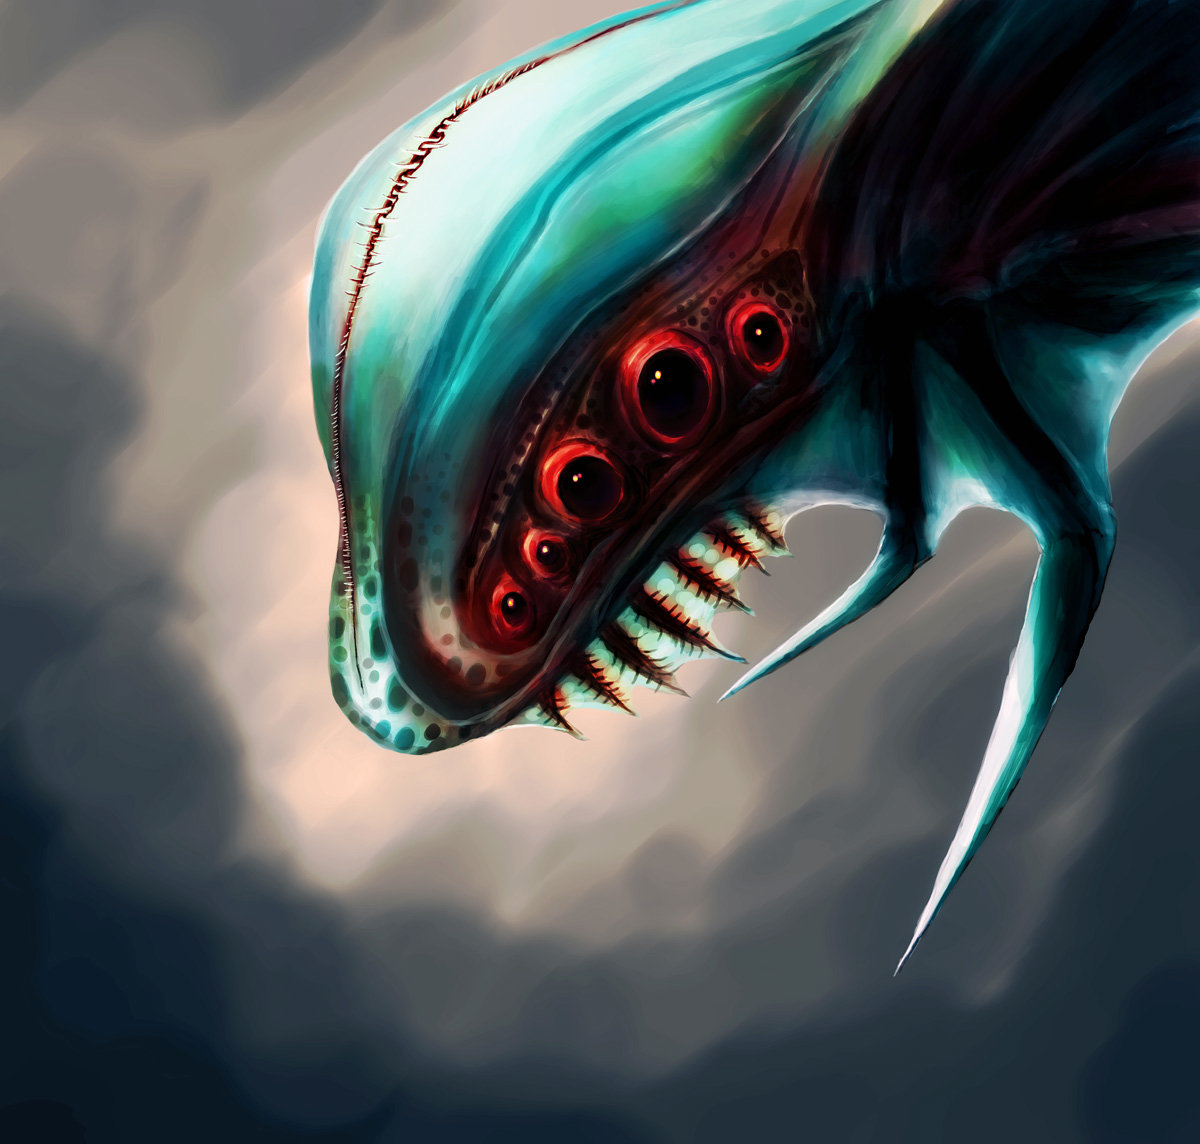 Orm irian creature head by catharina wendland